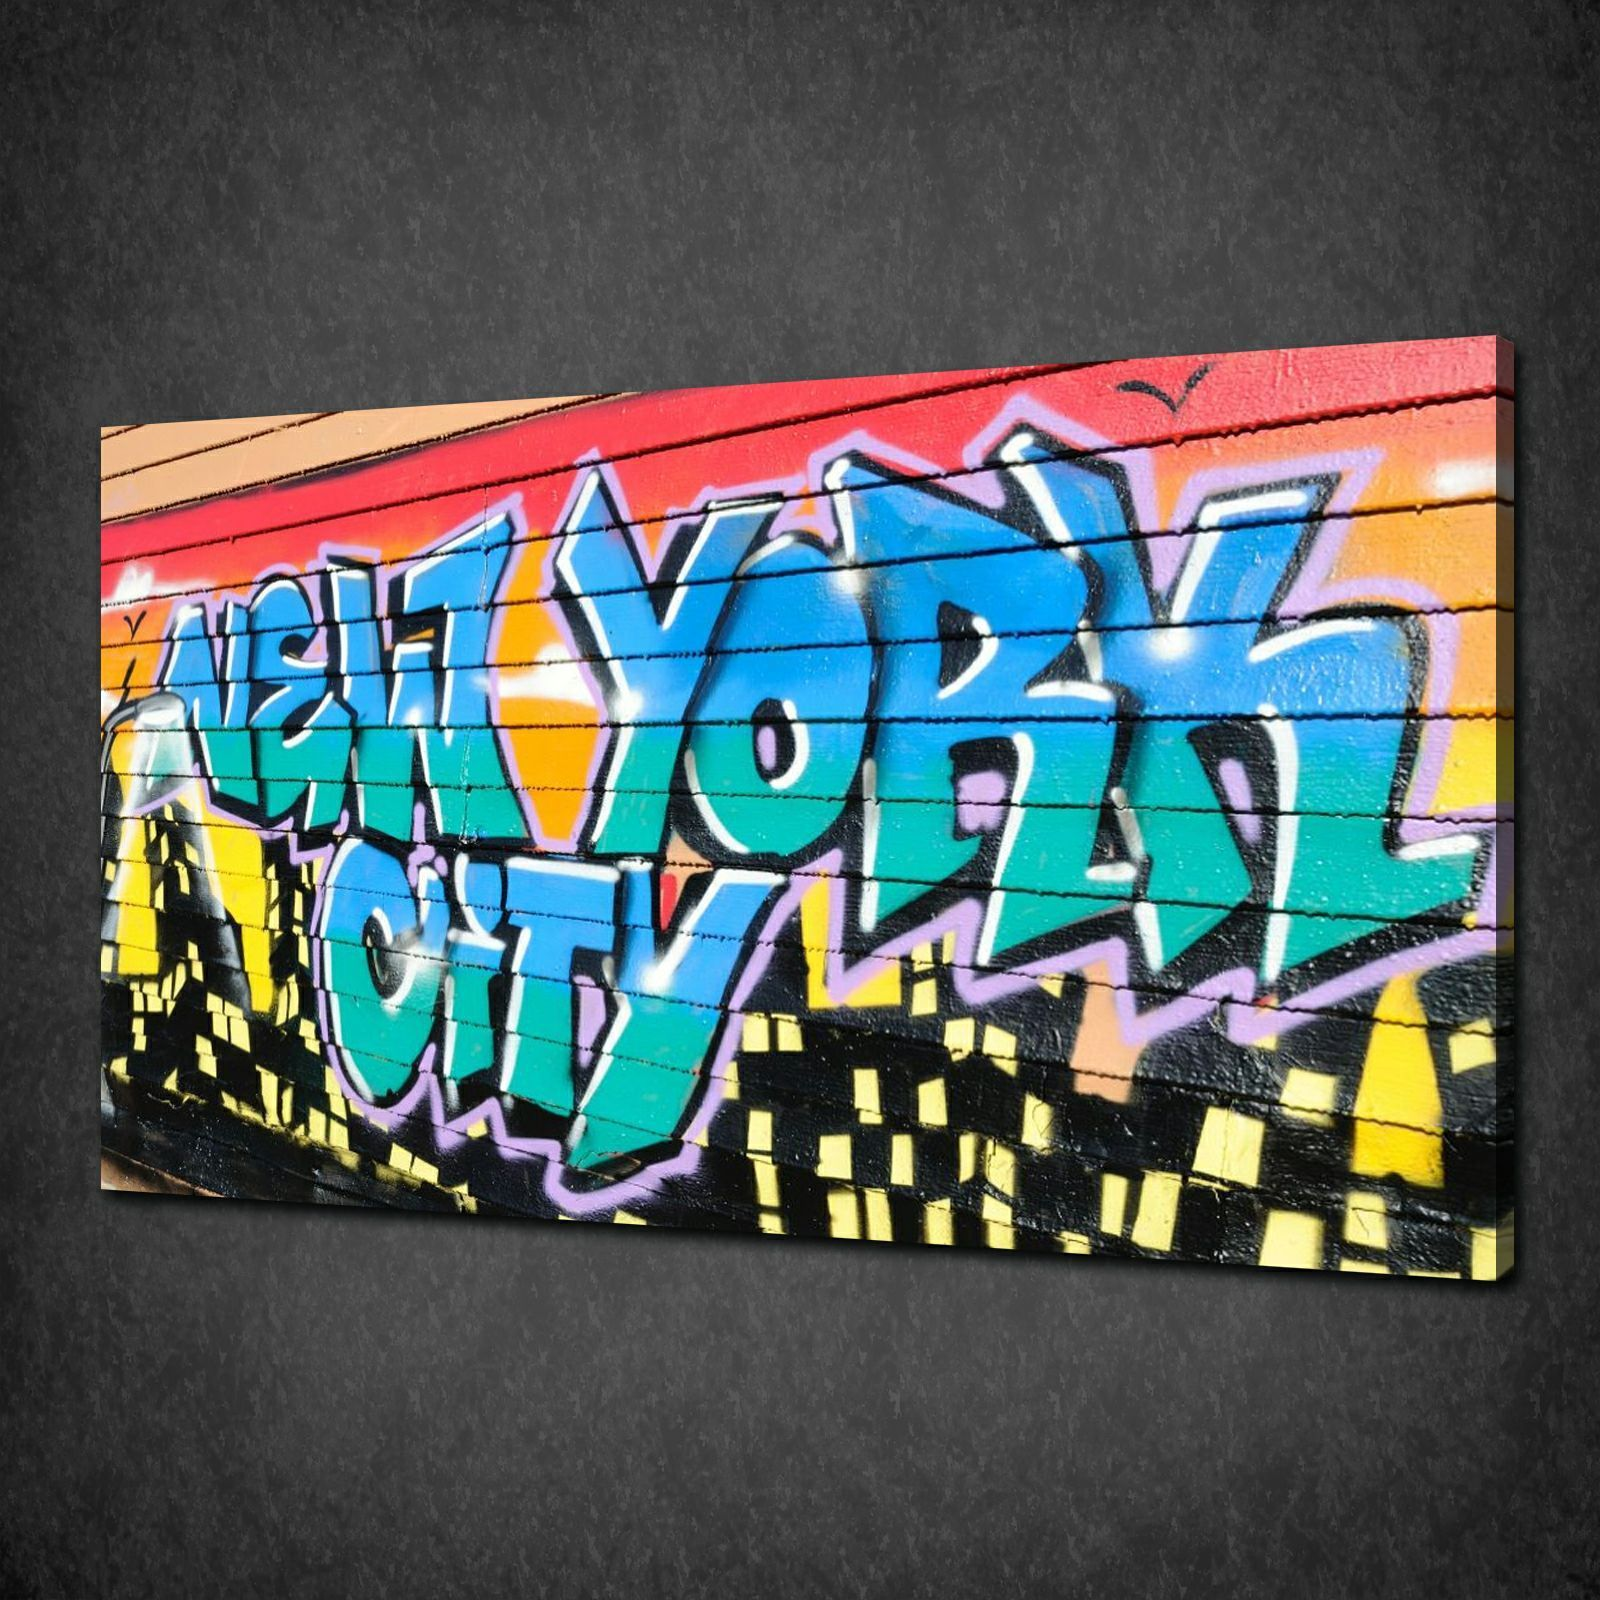 New york city graffiti wall modern canvas print picture wall art free uk pp